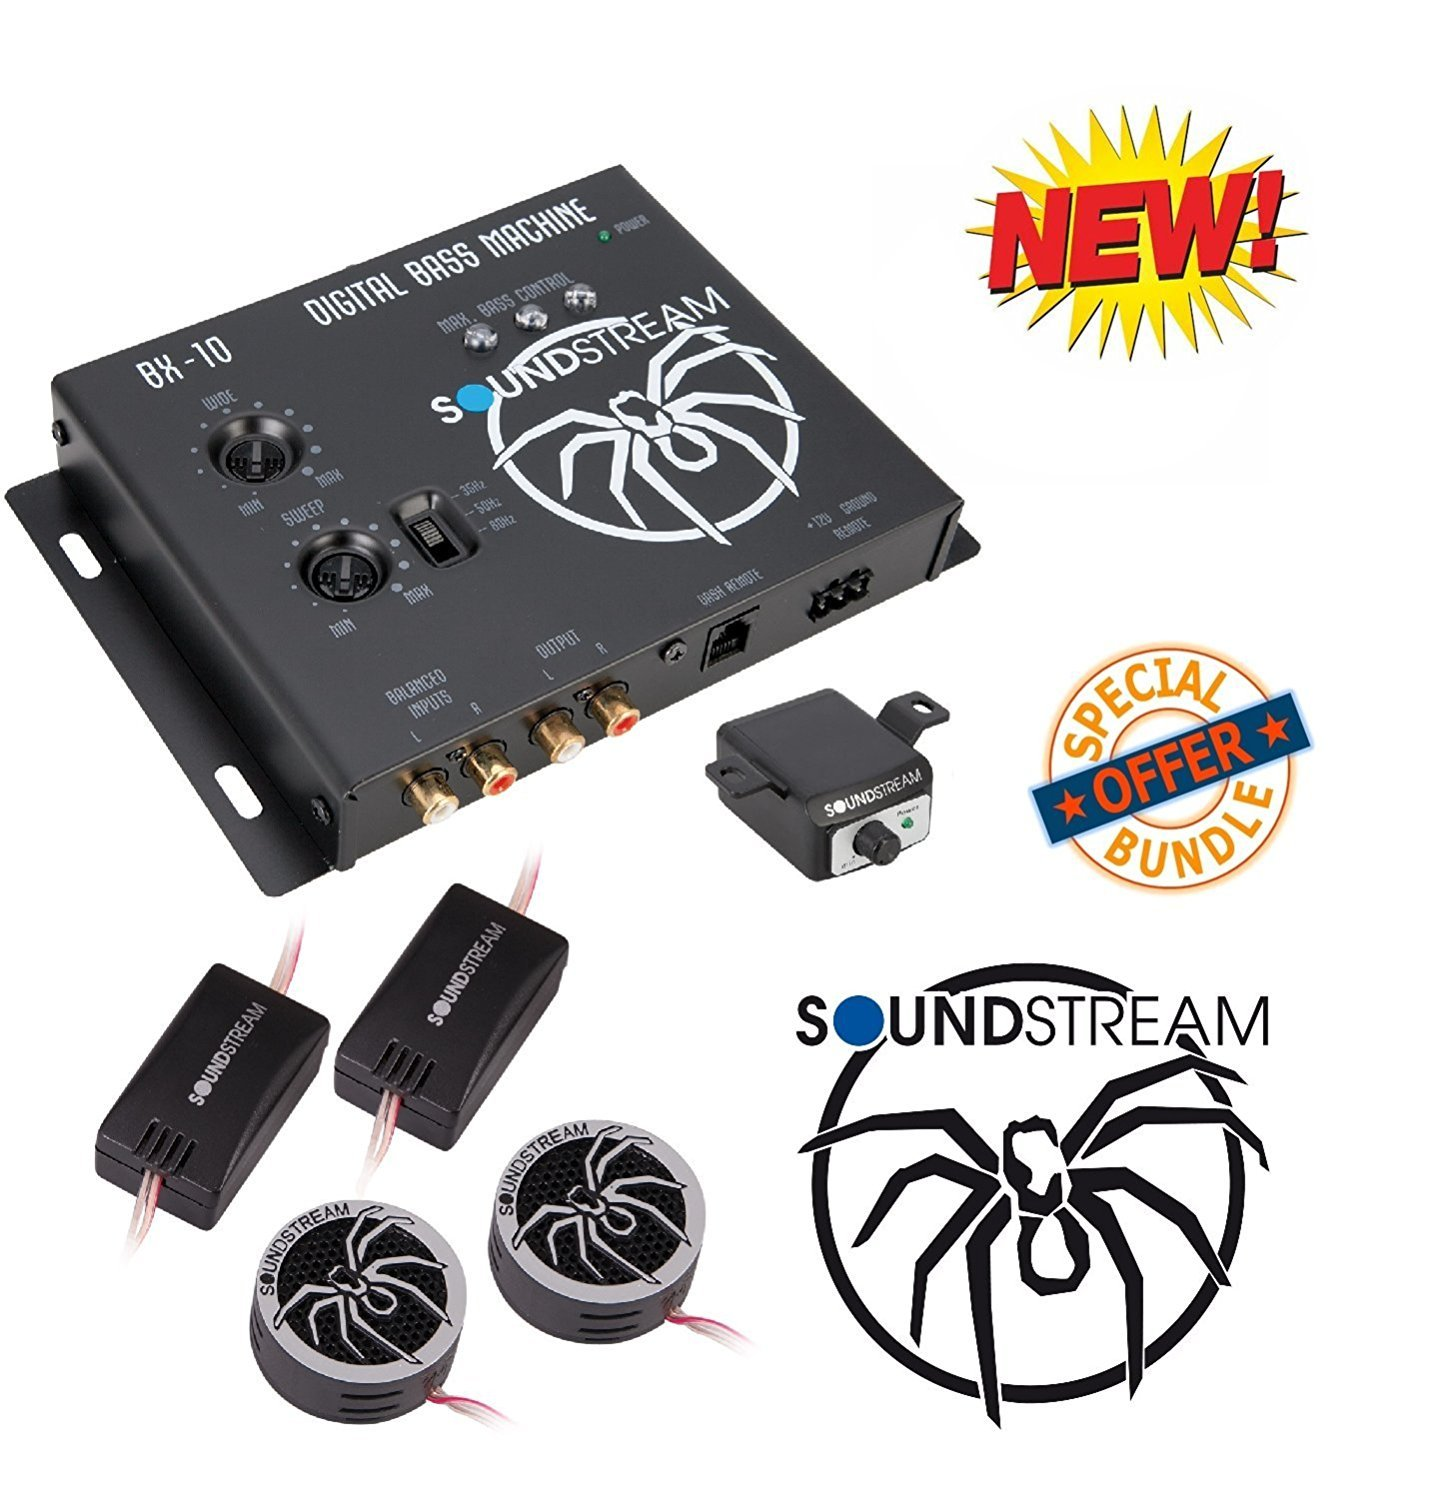 """Soundstream BX-10 Digital Bass Reconstruction Processor with Remote W/ Soundstream TWT.5 1"""" TWT Series PEI Dome Tweeters"""